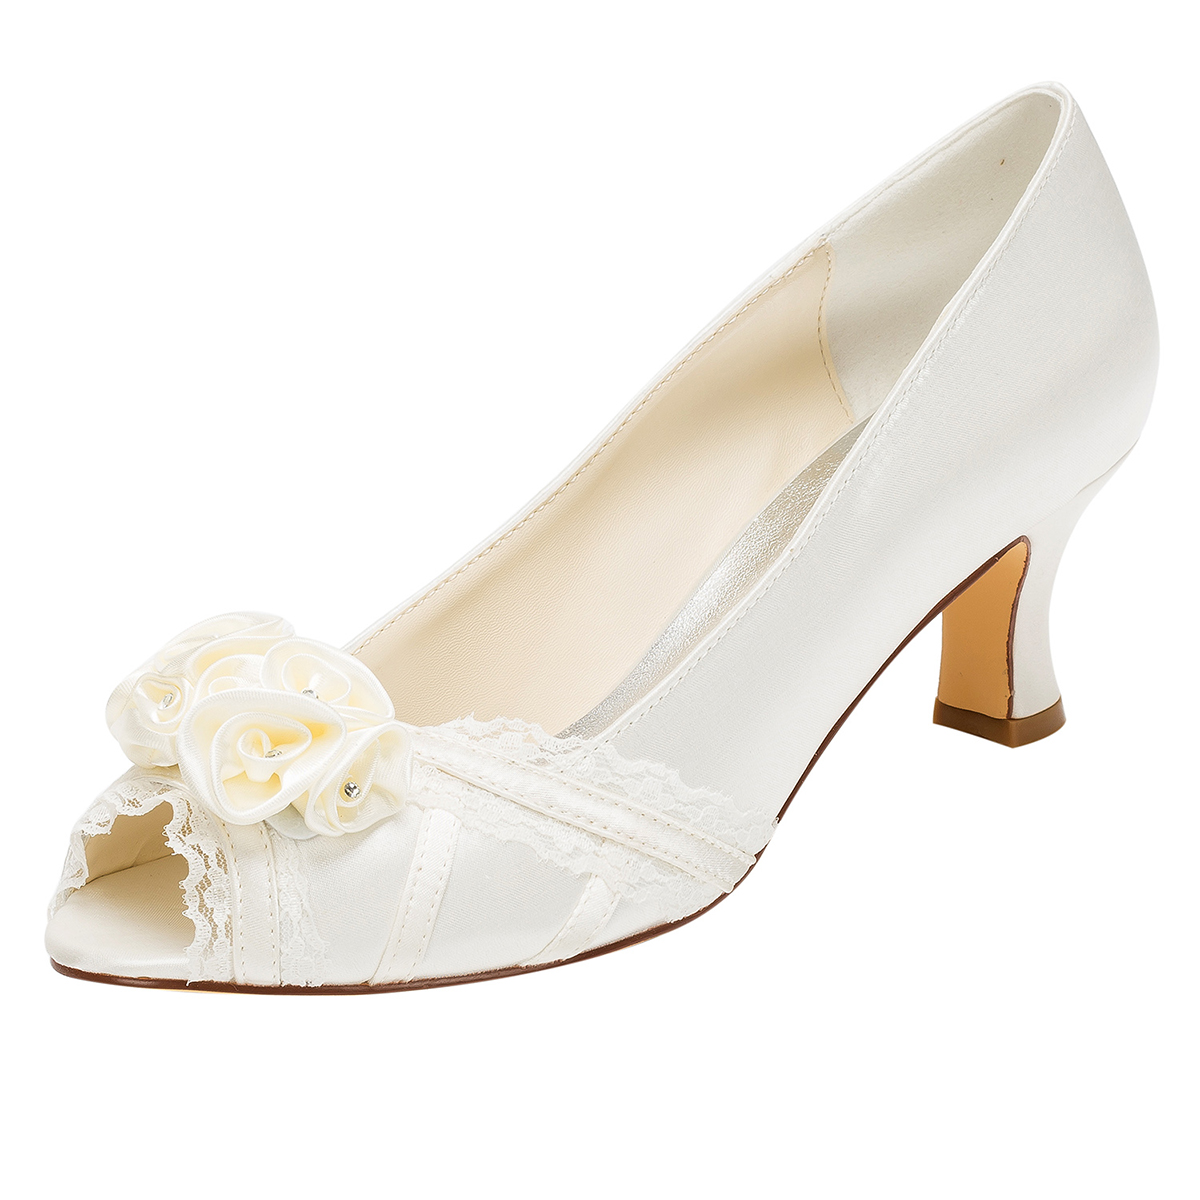 7a53b655f3a7 Peep Toe Sandals Chunky Heel Ivory Satin With Appliqued And Lace ...